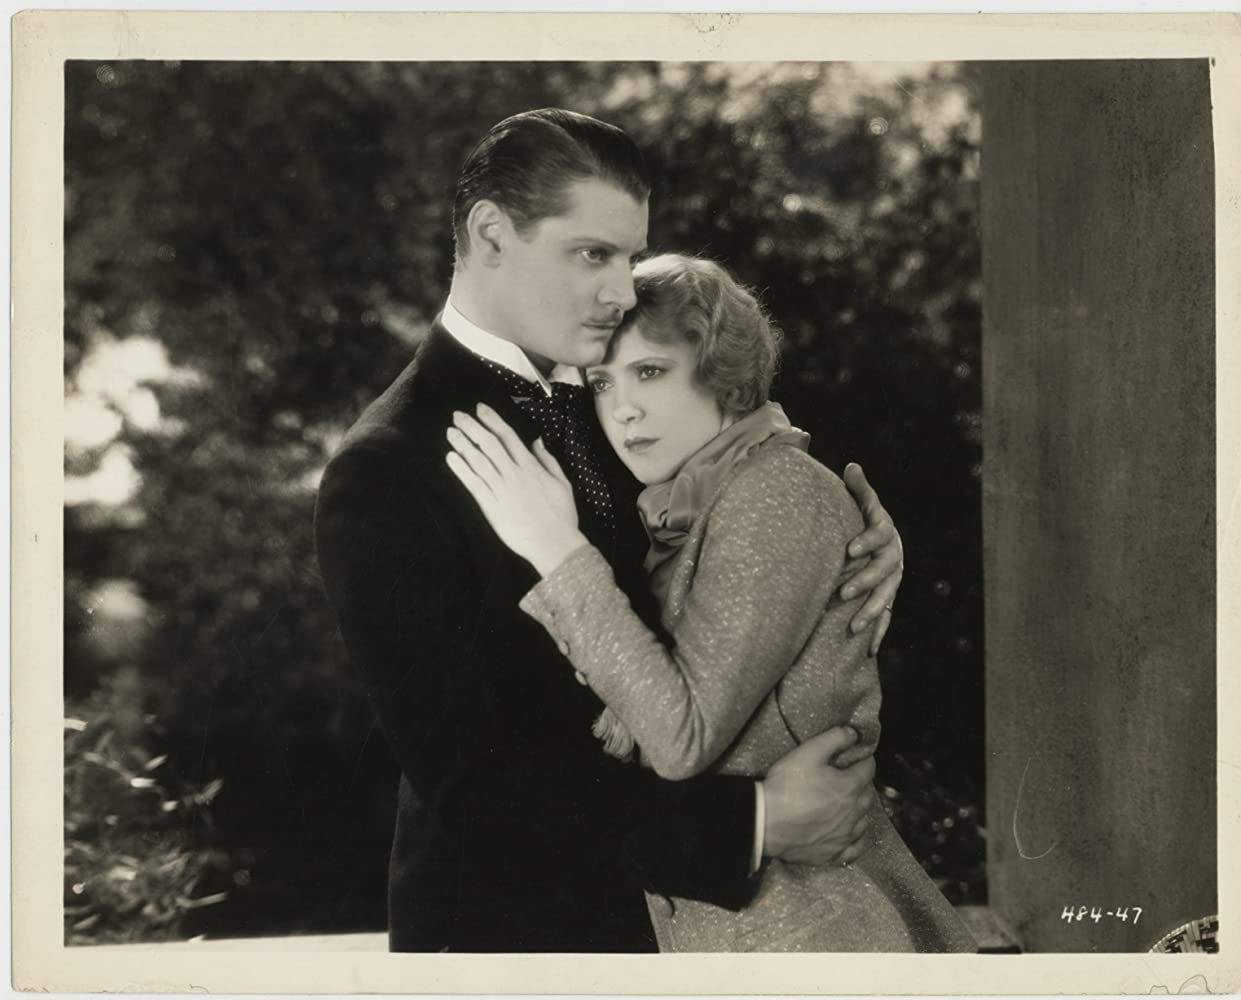 The Lady of Scandal (1930) Romance, Comedy, Drama